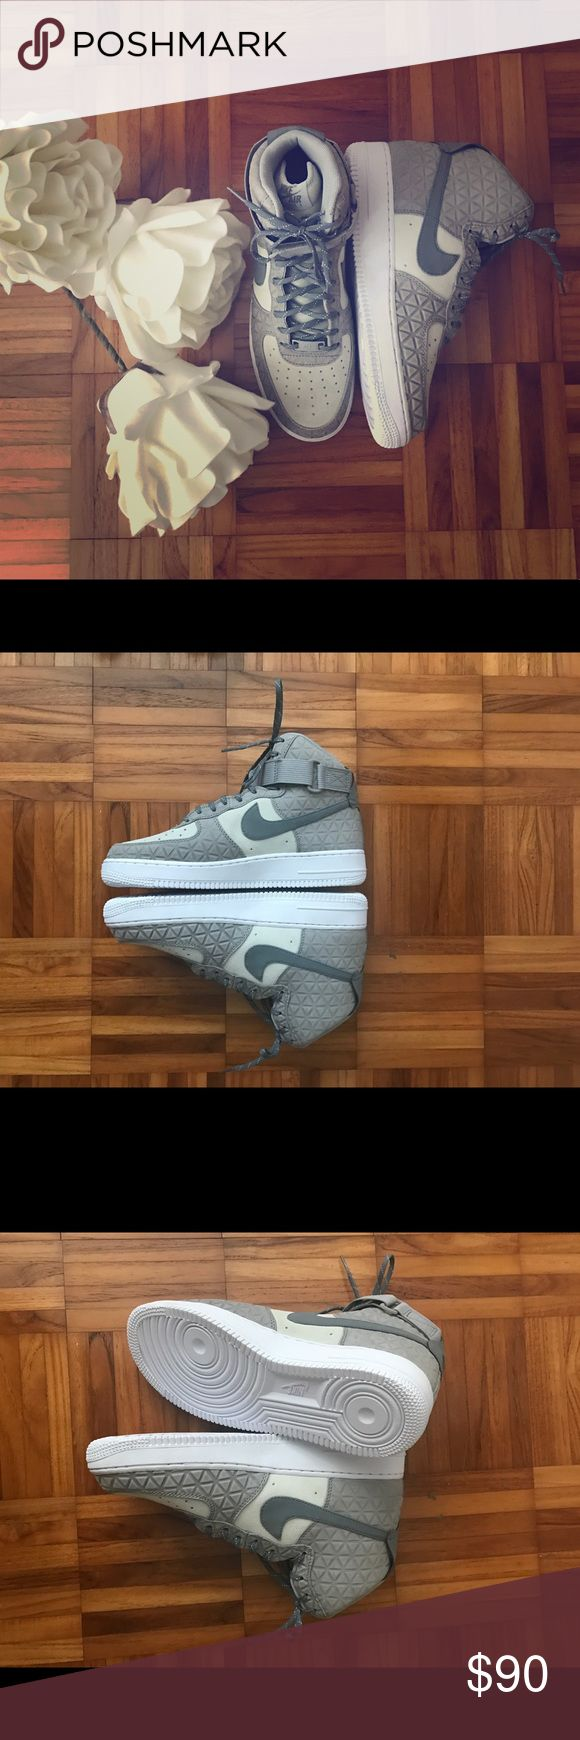 Nike Original•Air Force 1 Brand New Nike Air Force 1 ✨ Custom grey design  Hot Deal on hot kicks Women's size 9.5 ALL questions welcome! 💋 Nike Shoes Sneakers